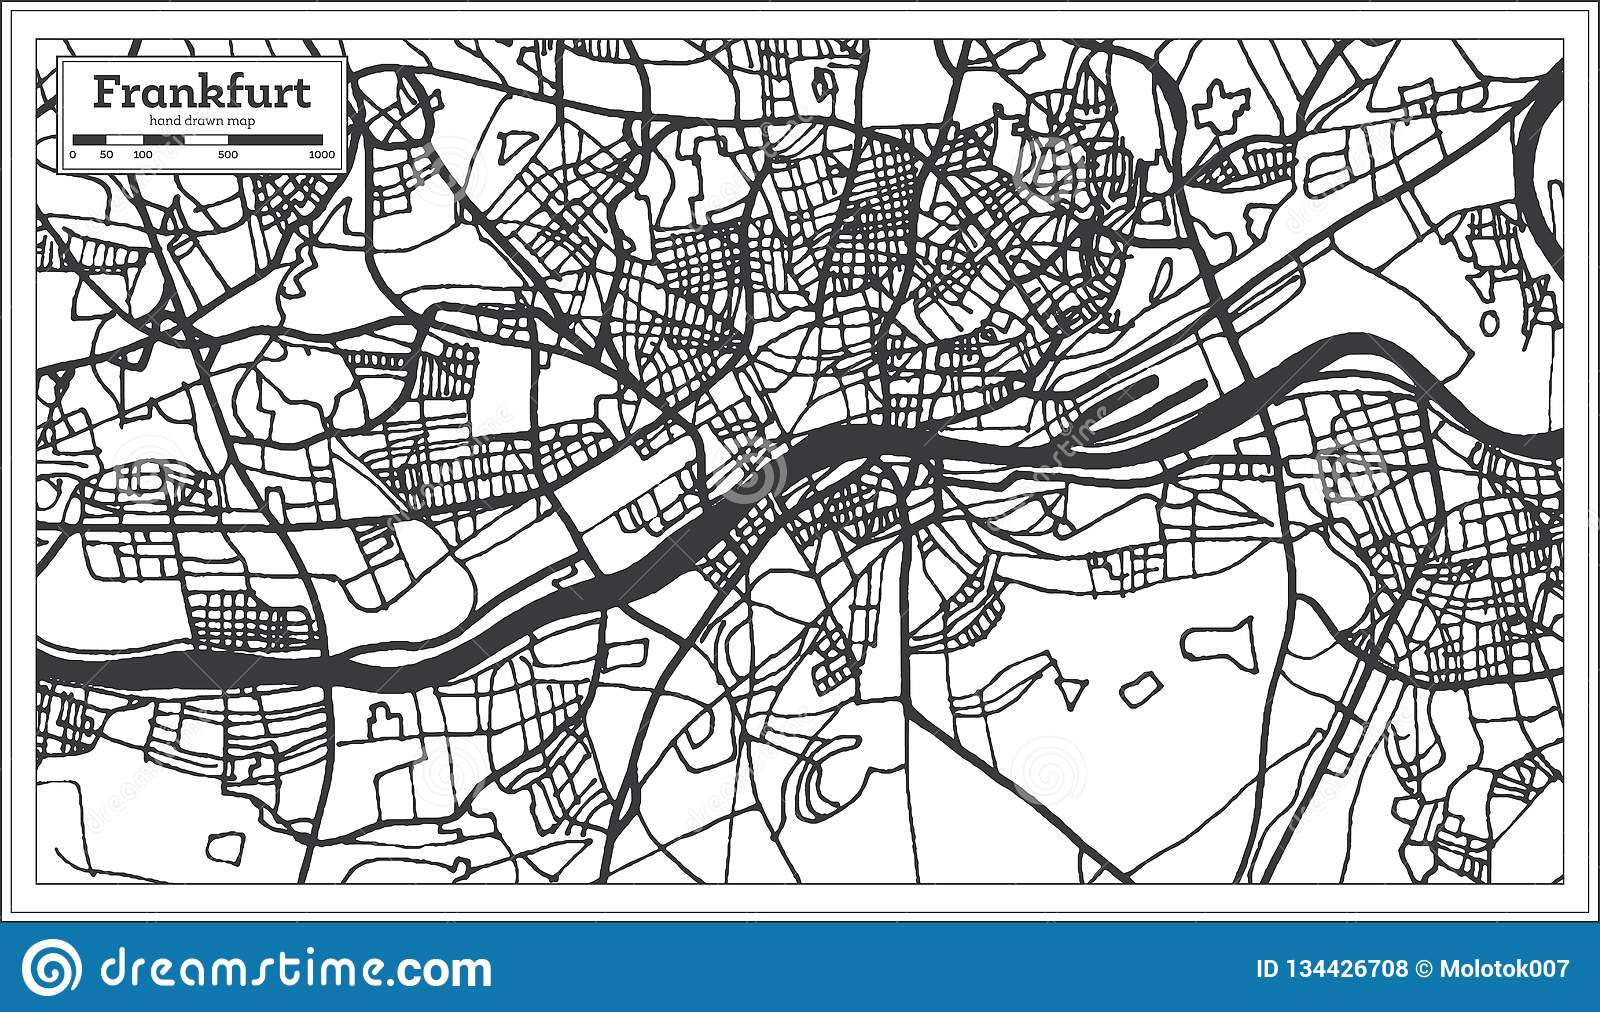 Map Of Germany Frankfurt.Frankfurt Germany City Map In Retro Style Outline Map Stock Vector